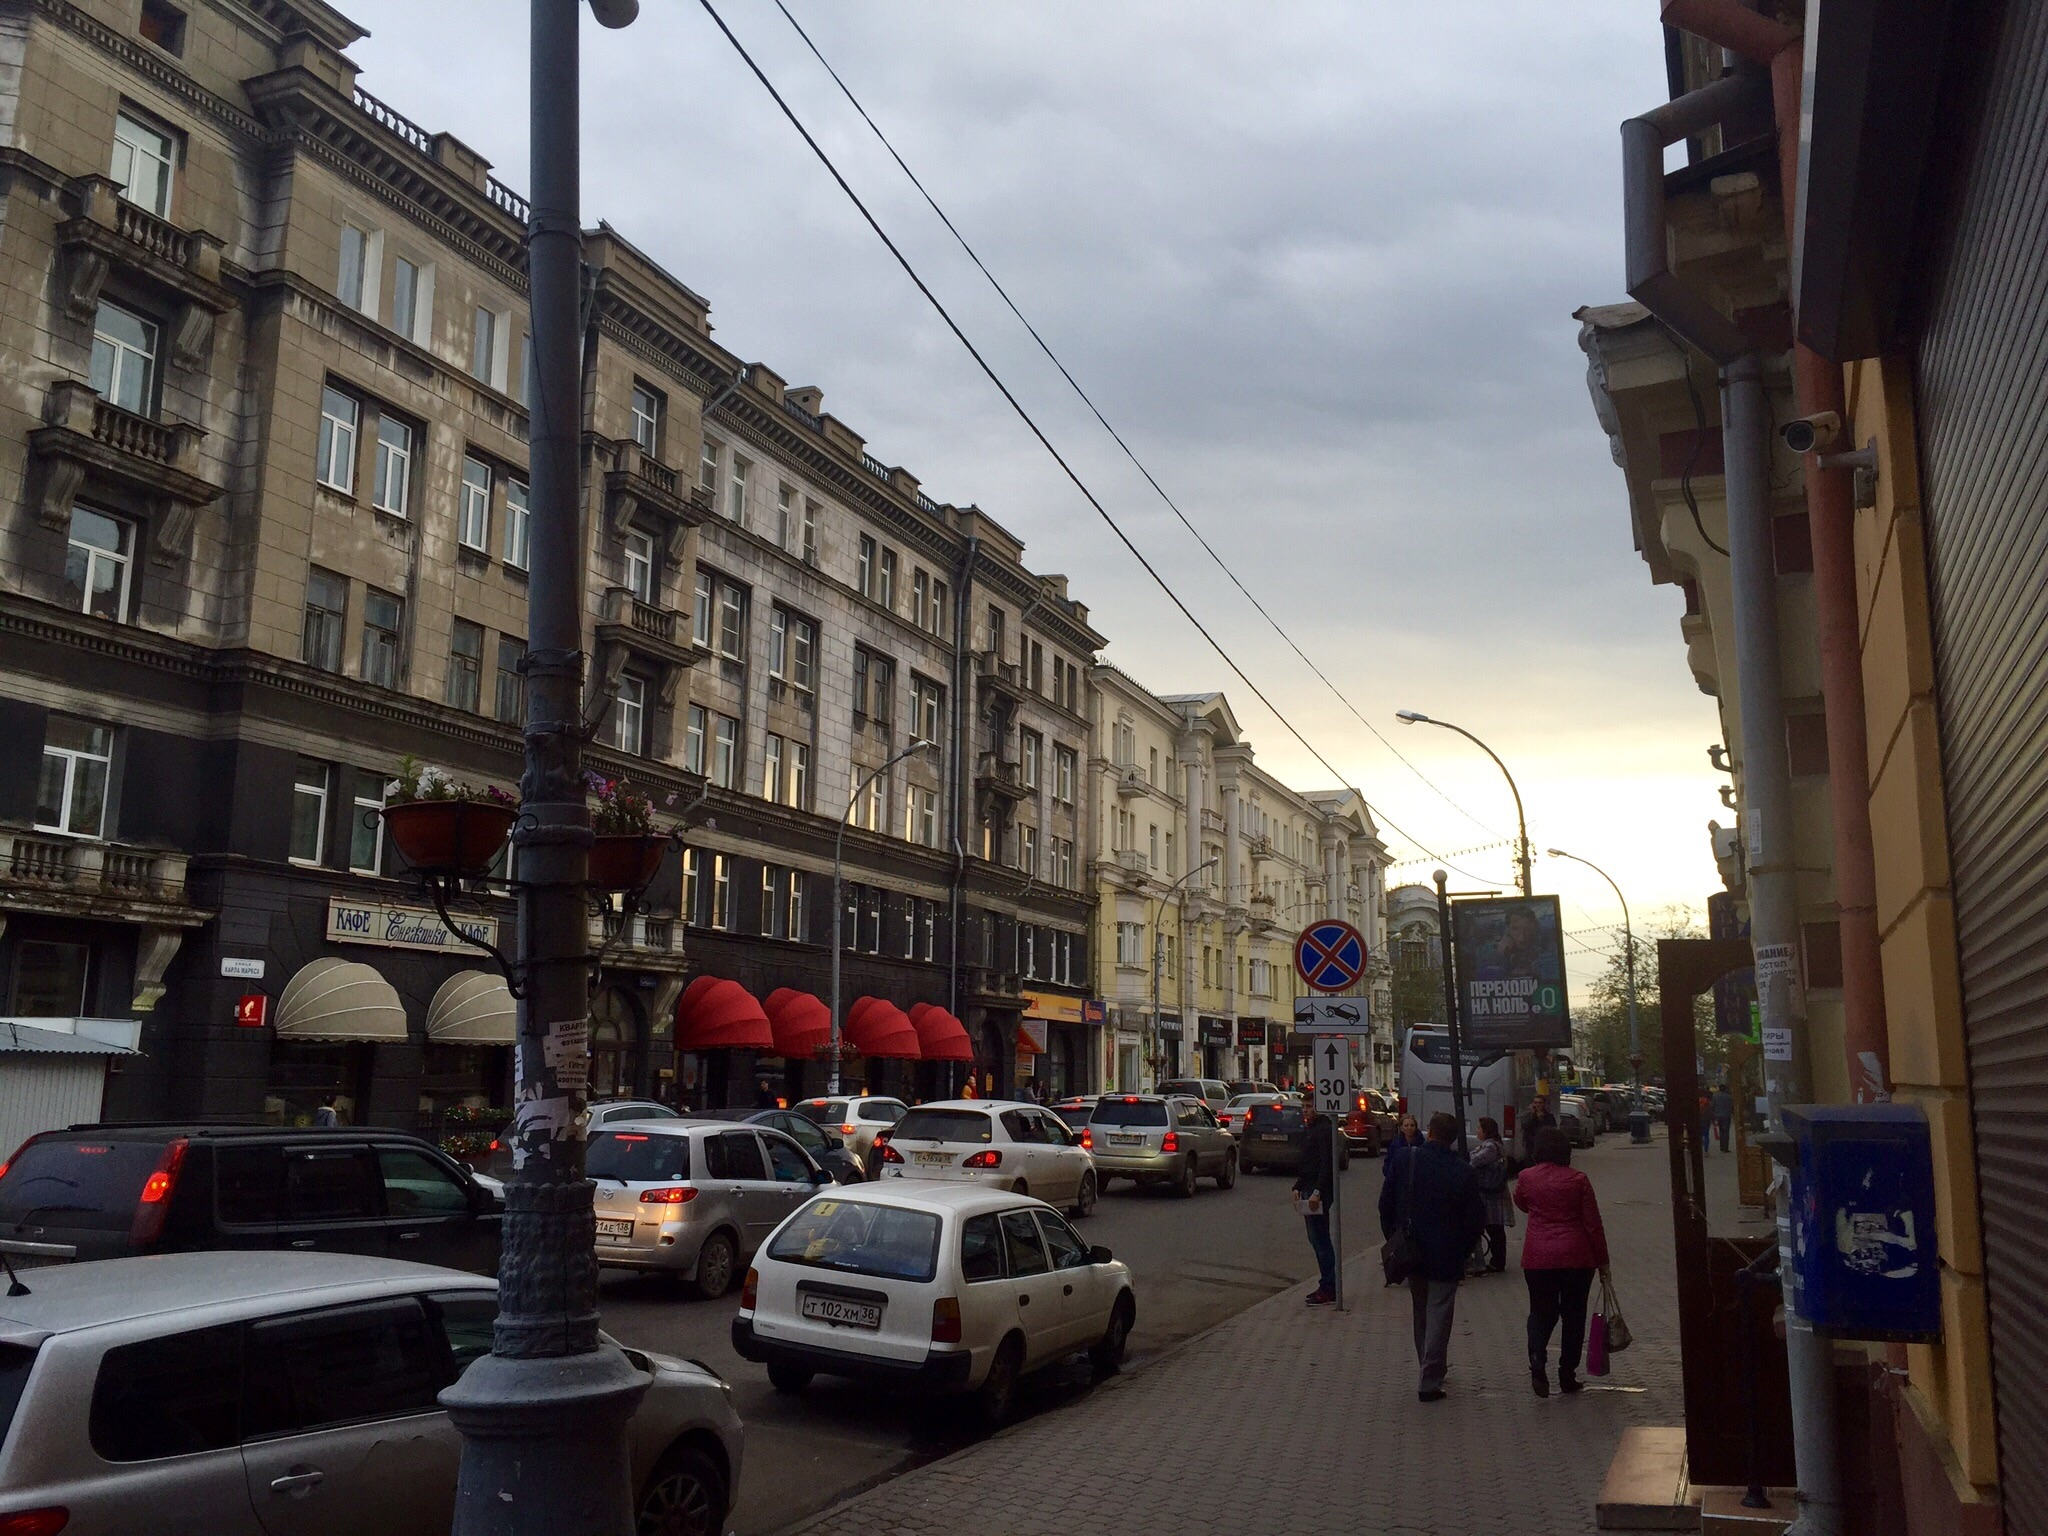 One of the main streets in Irkutsk.